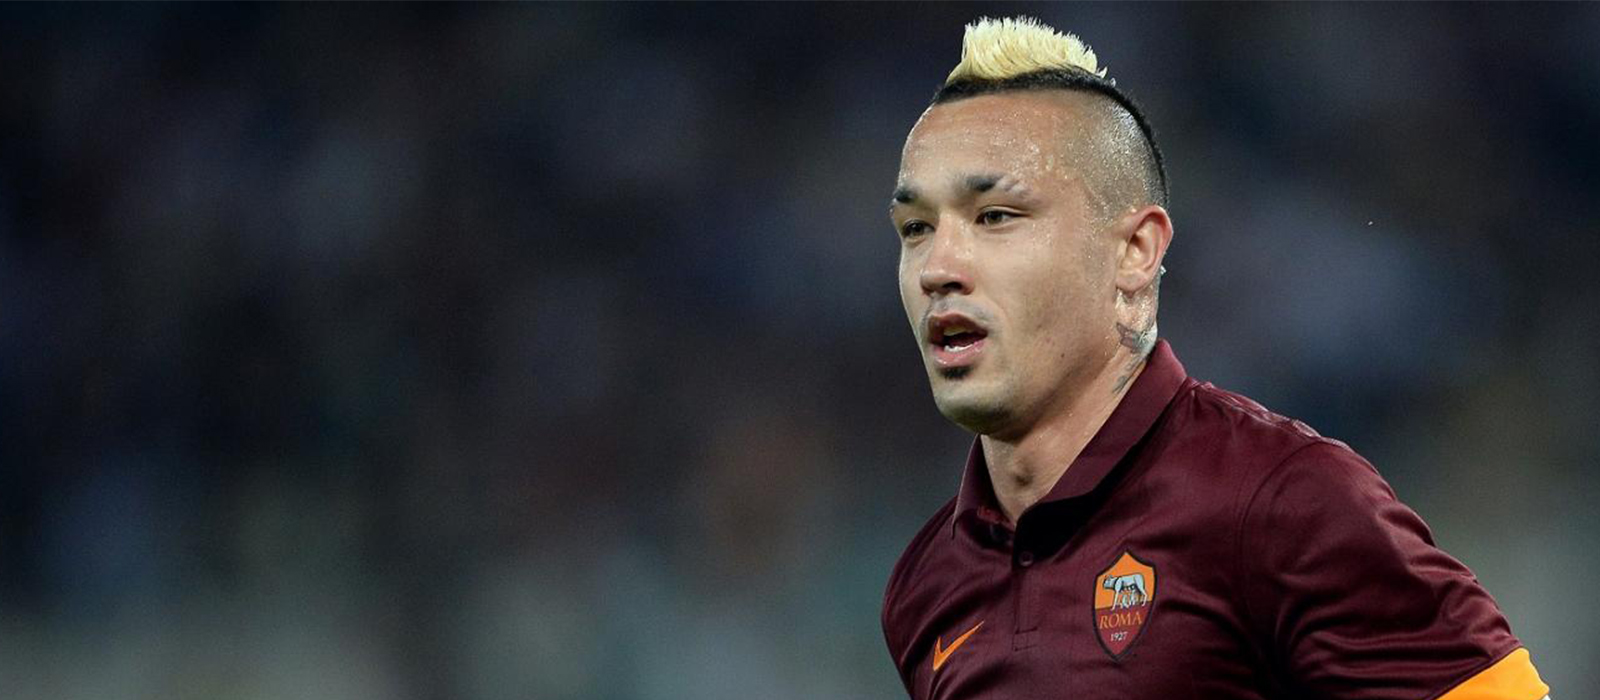 Radja Nainggolan would prefer Manchester United move if he left Roma – report